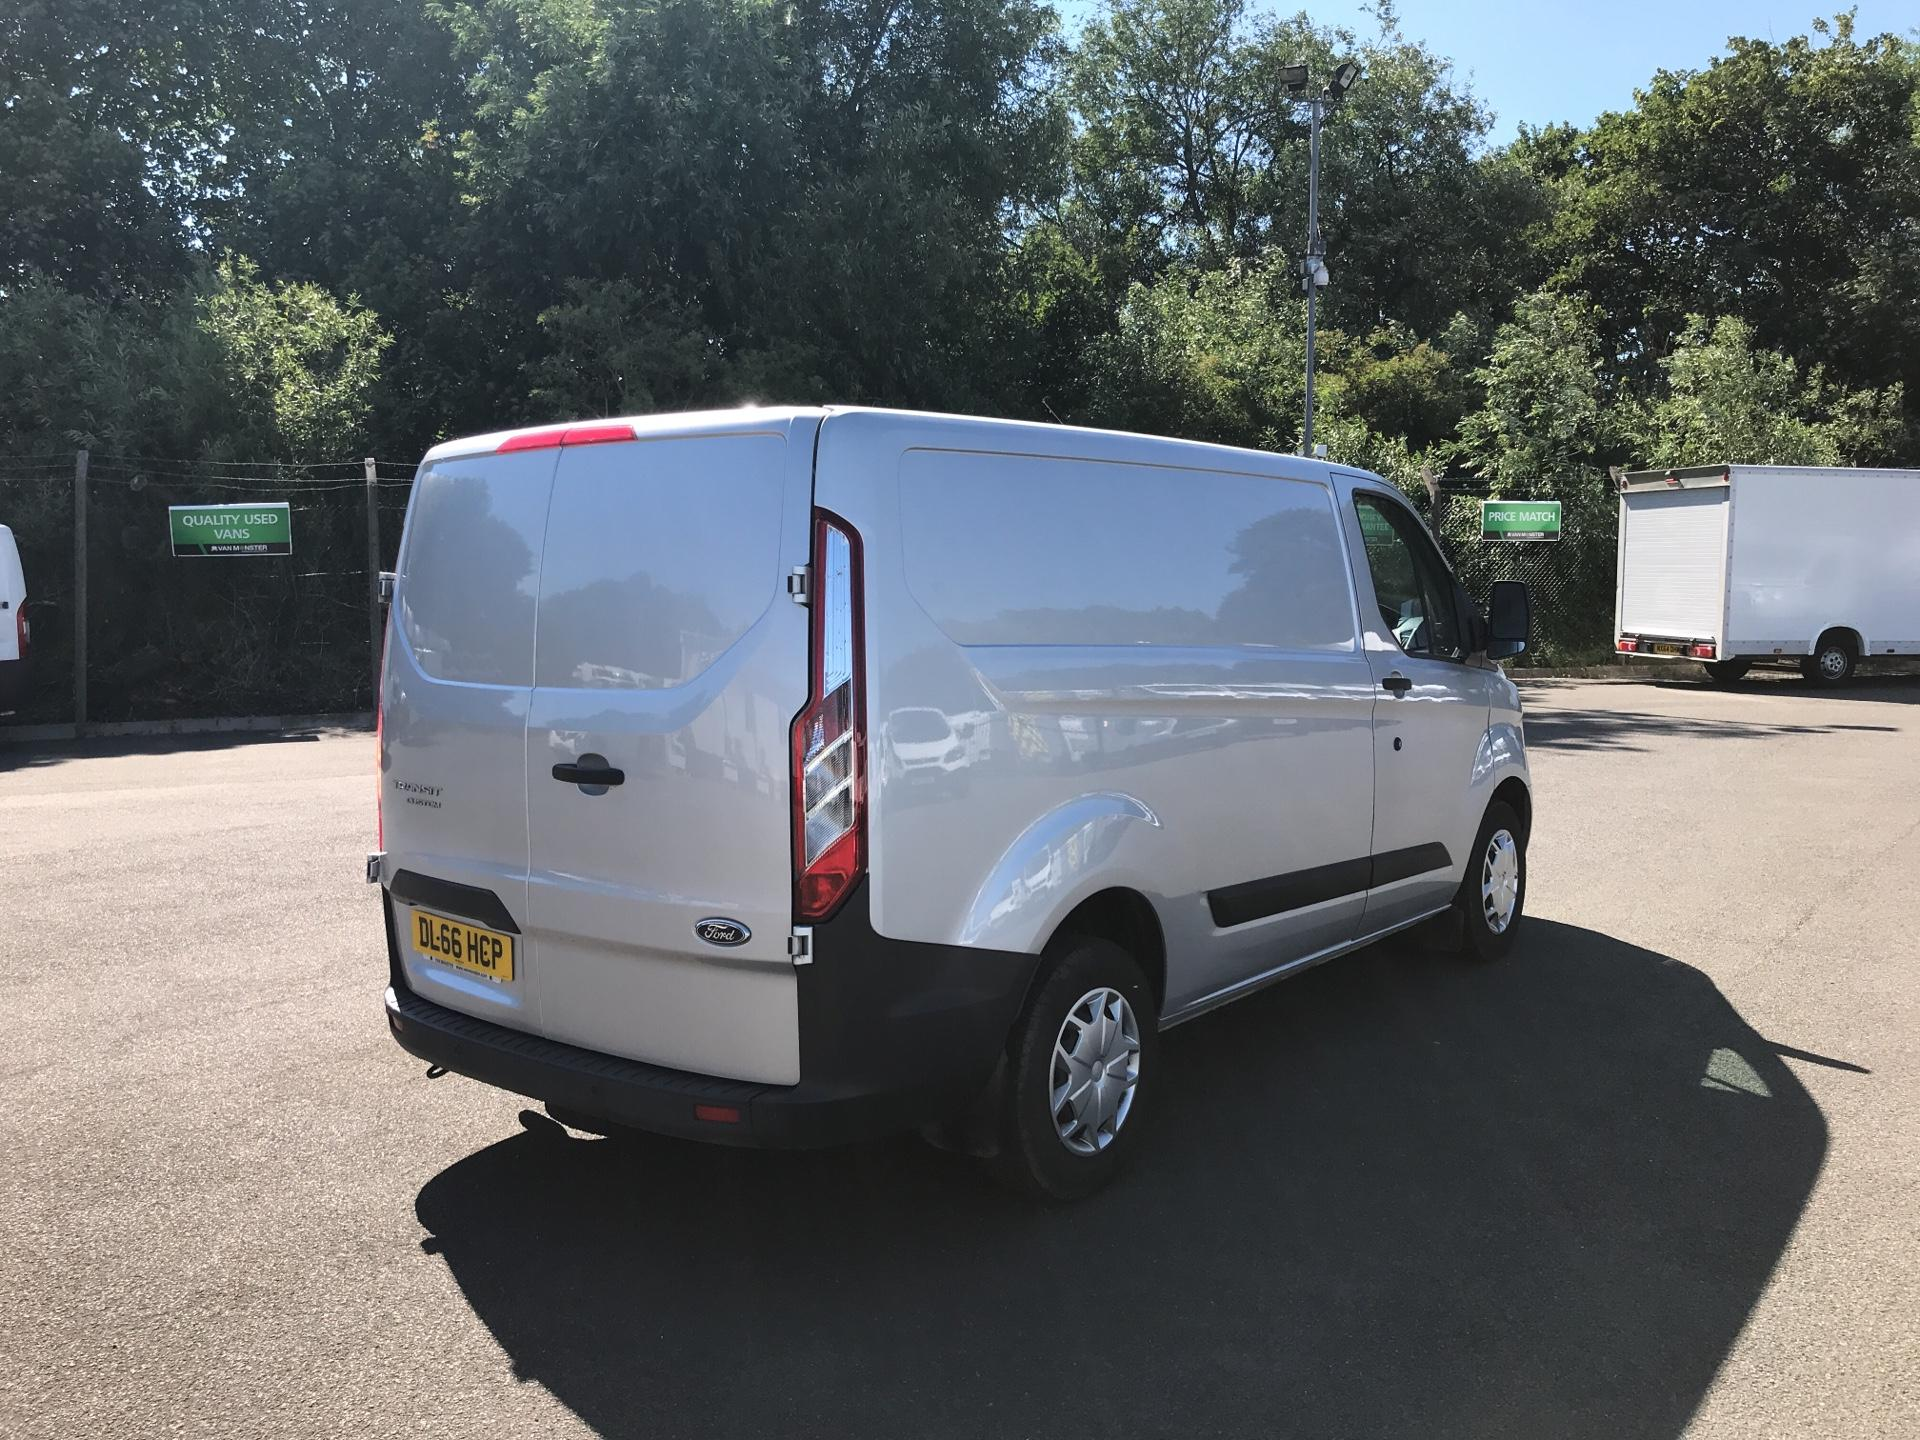 2016 Ford Transit Custom 270 L1 DIESEL FWD 2.2 TDCI 130PS LOW ROOF TREND VAN EURO 5 (DL66HCP) Thumbnail 3